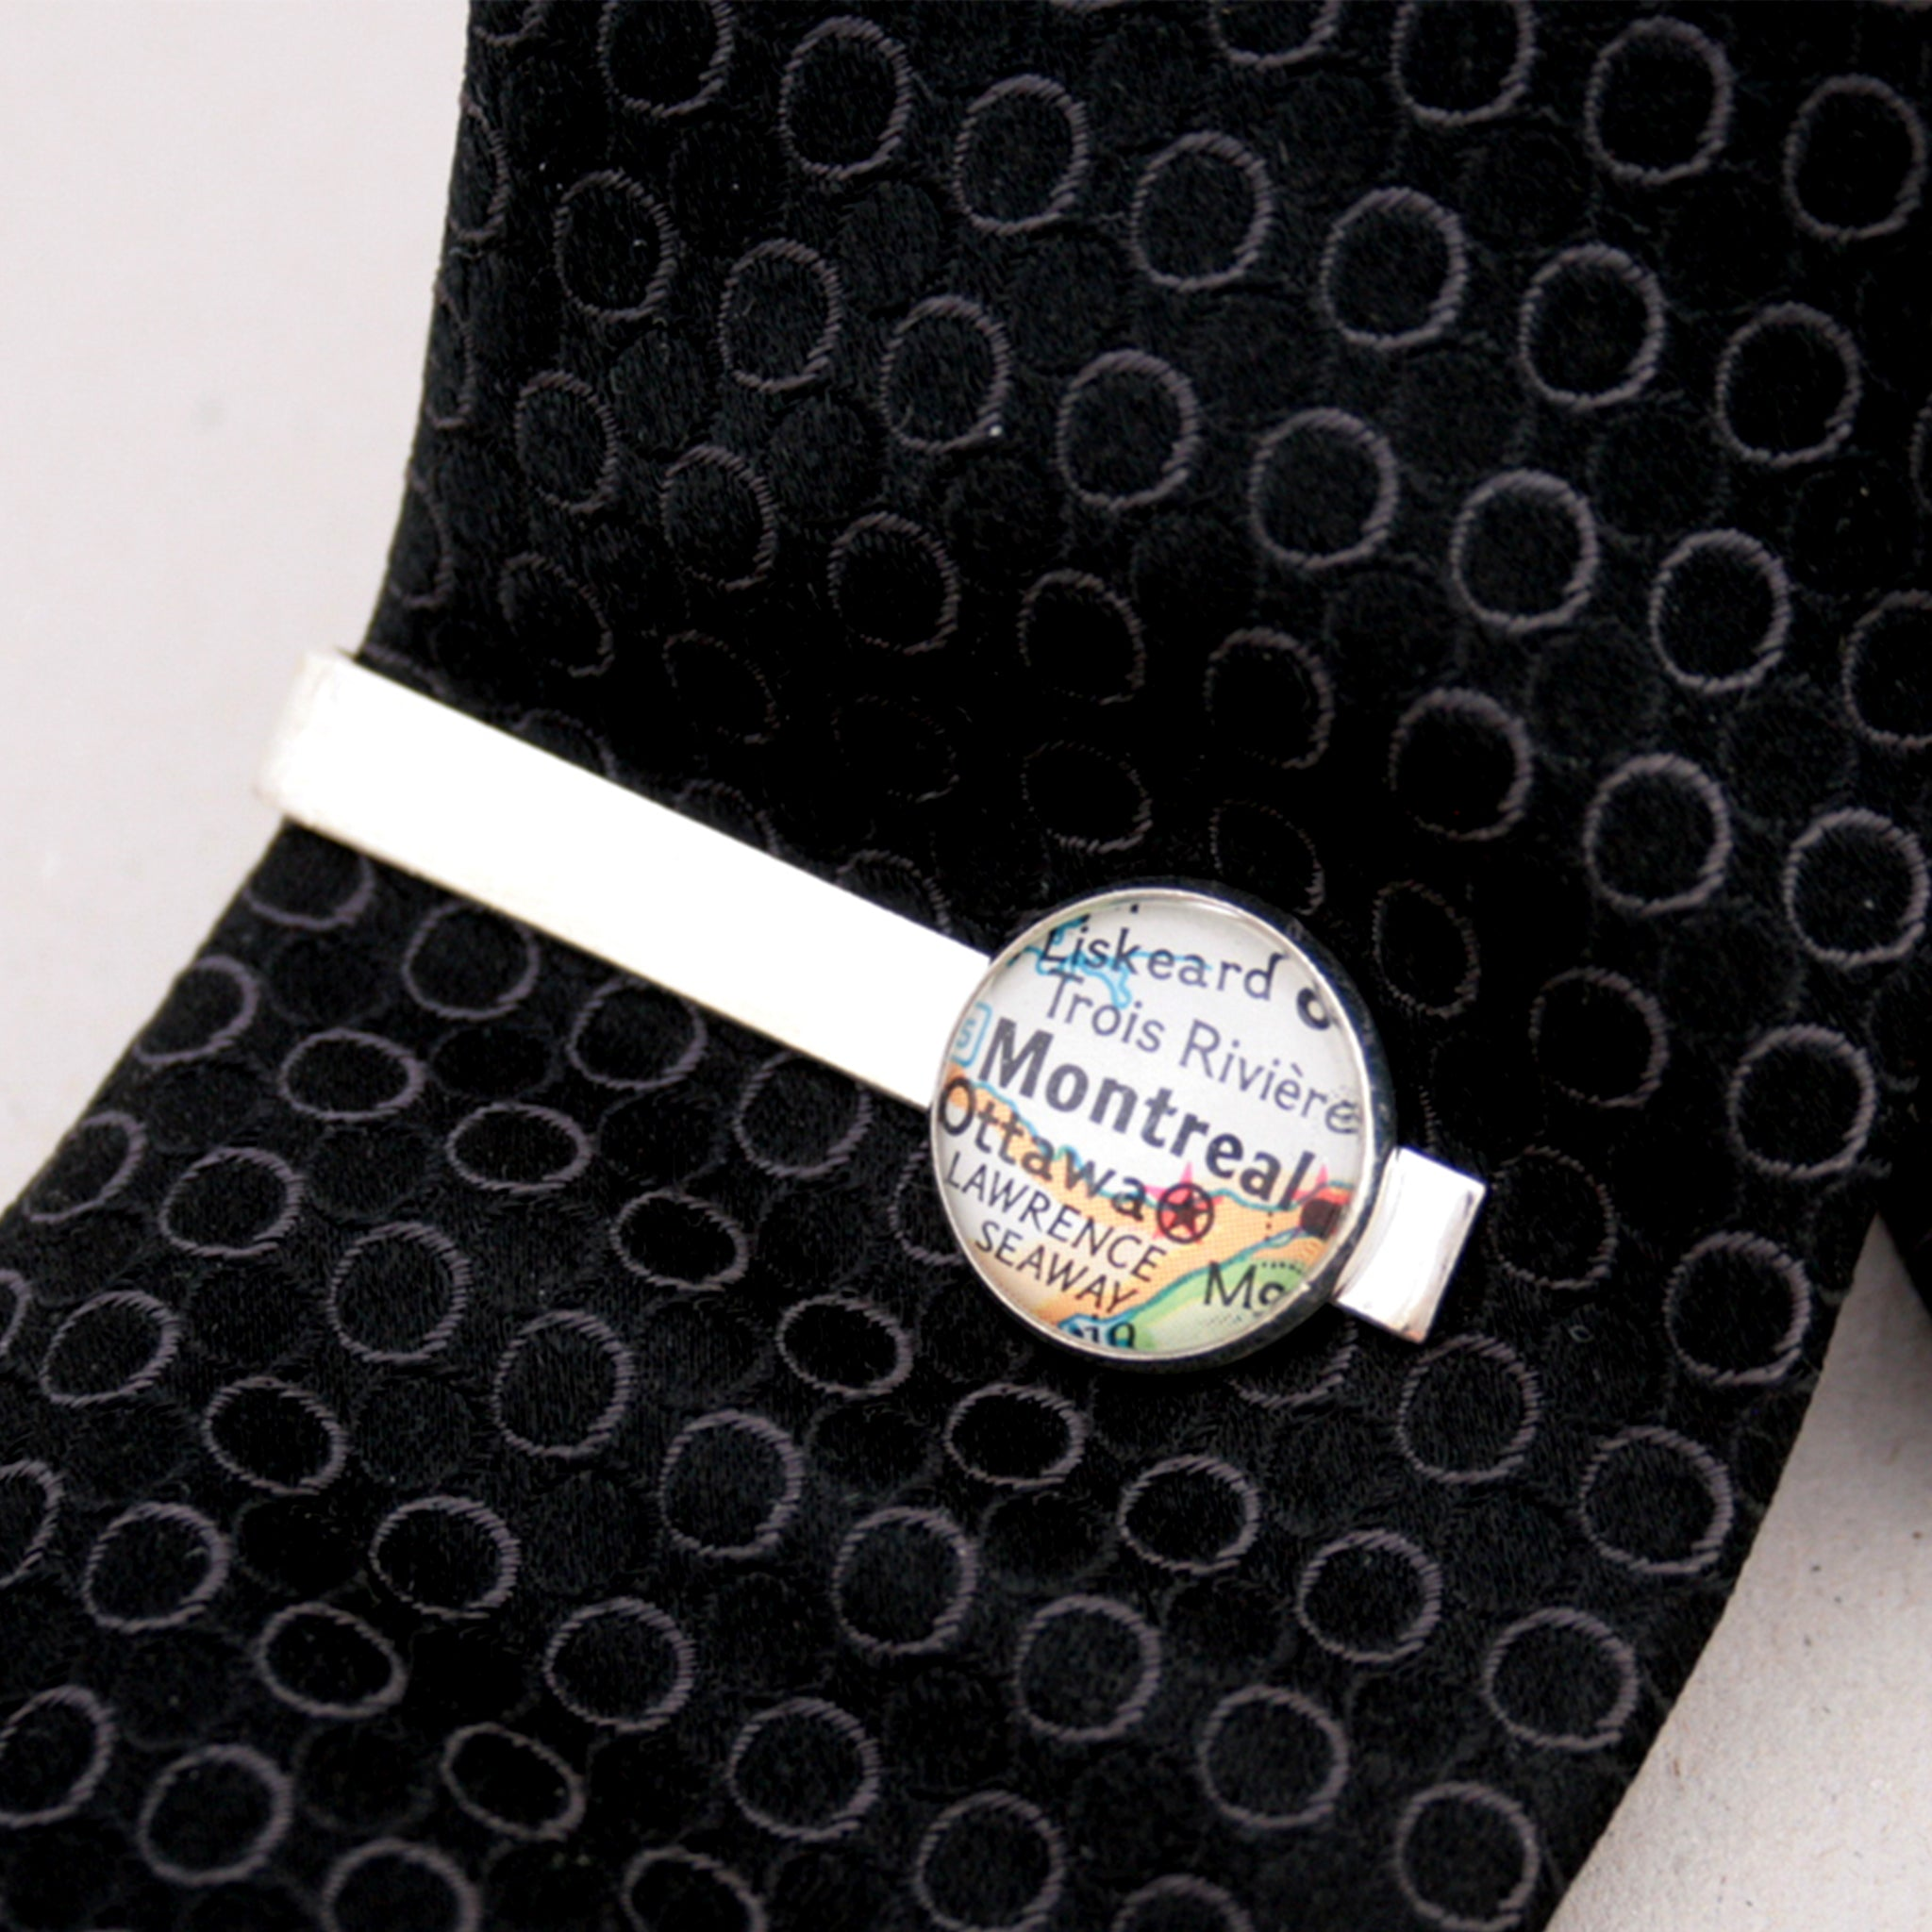 Personalised Tie Clip in silver color featuring map of Montreal on a black tie